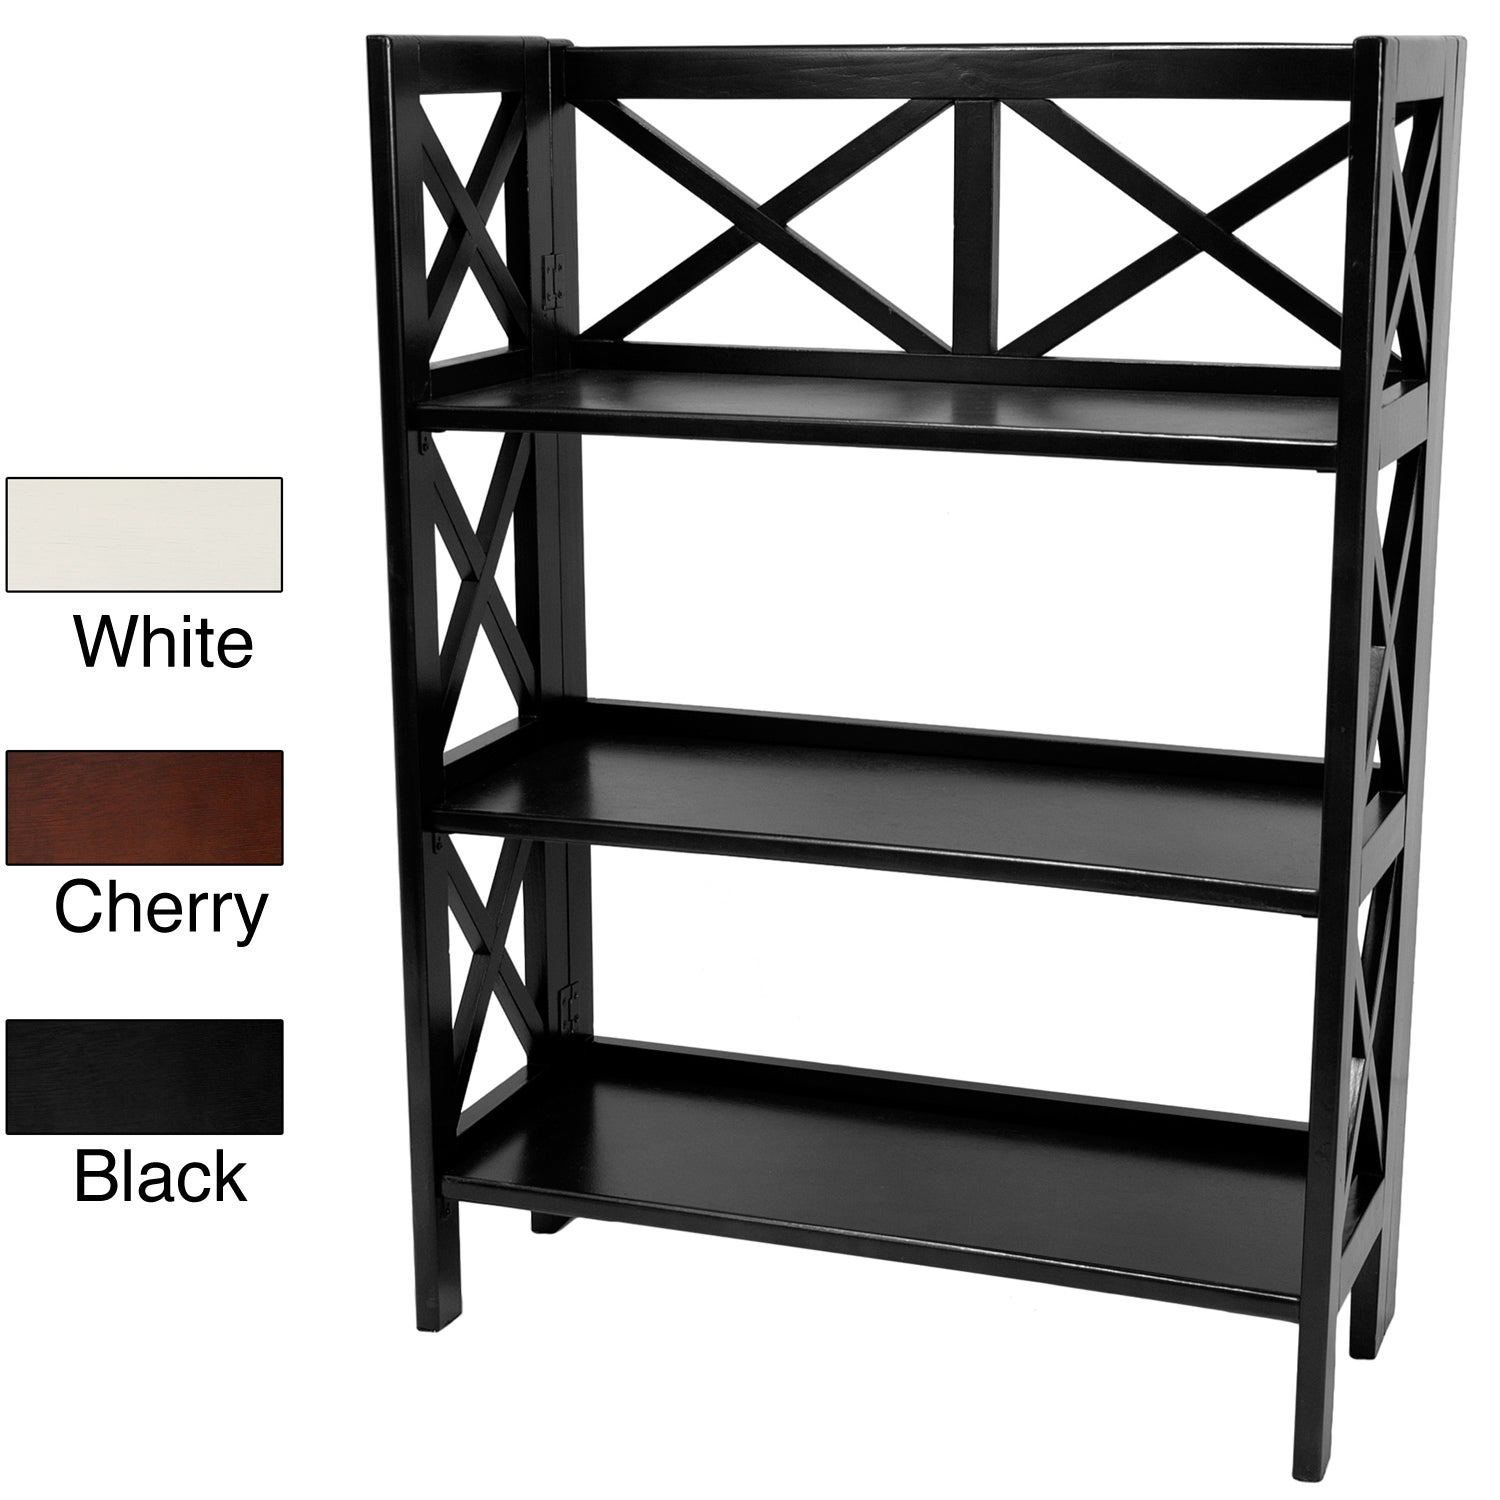 Architectural 37-inch Book Case Shelf (China)